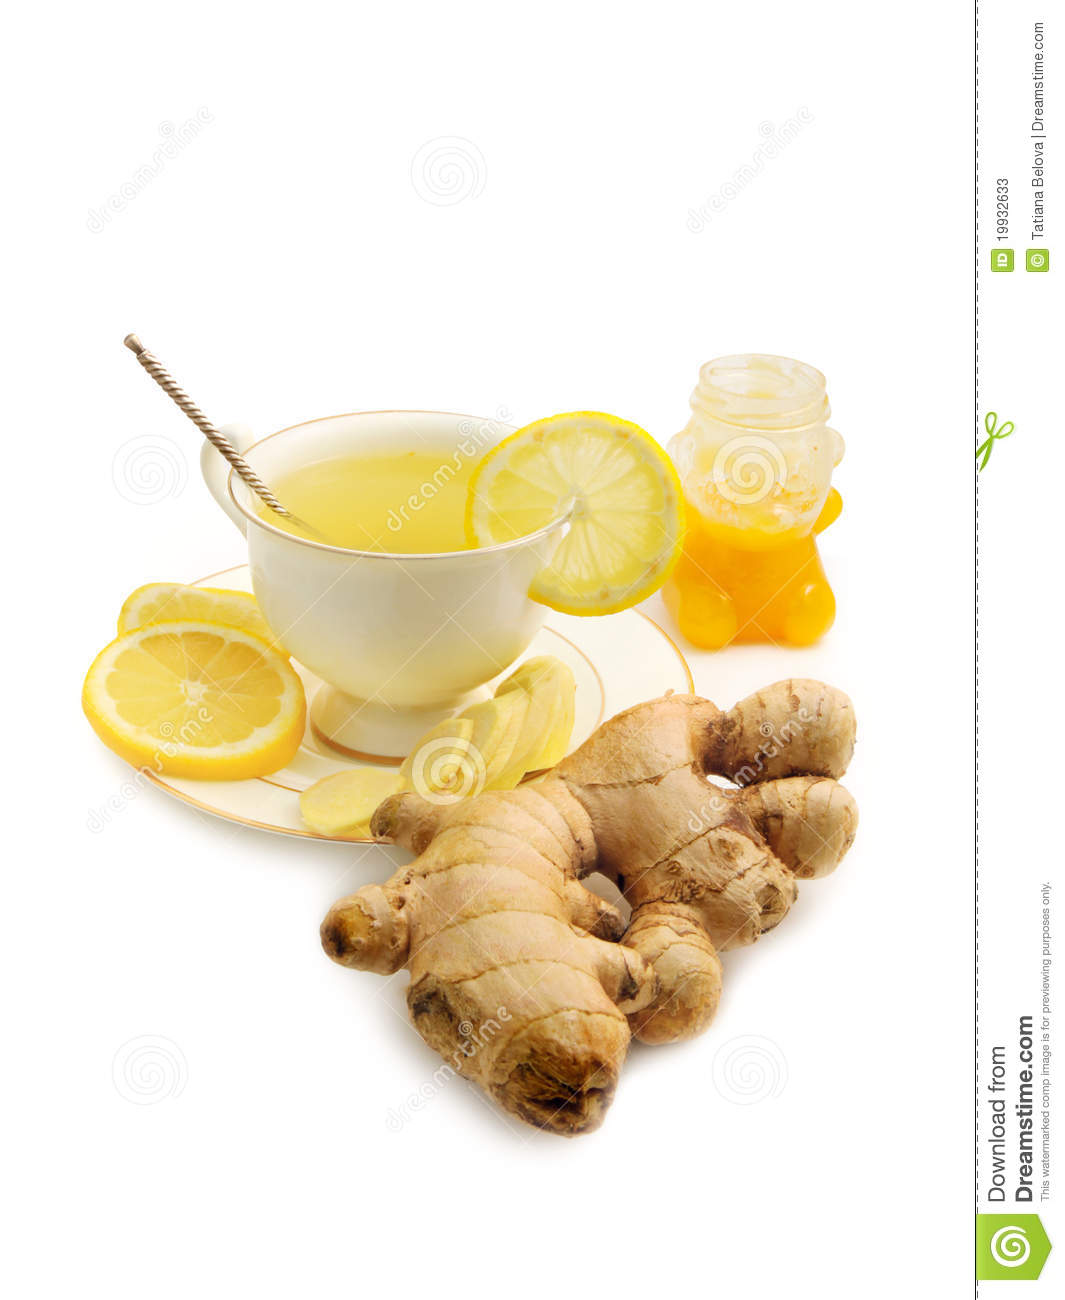 Ginger Tea With Lemon And Honey Stock Photos - Image: 19932633